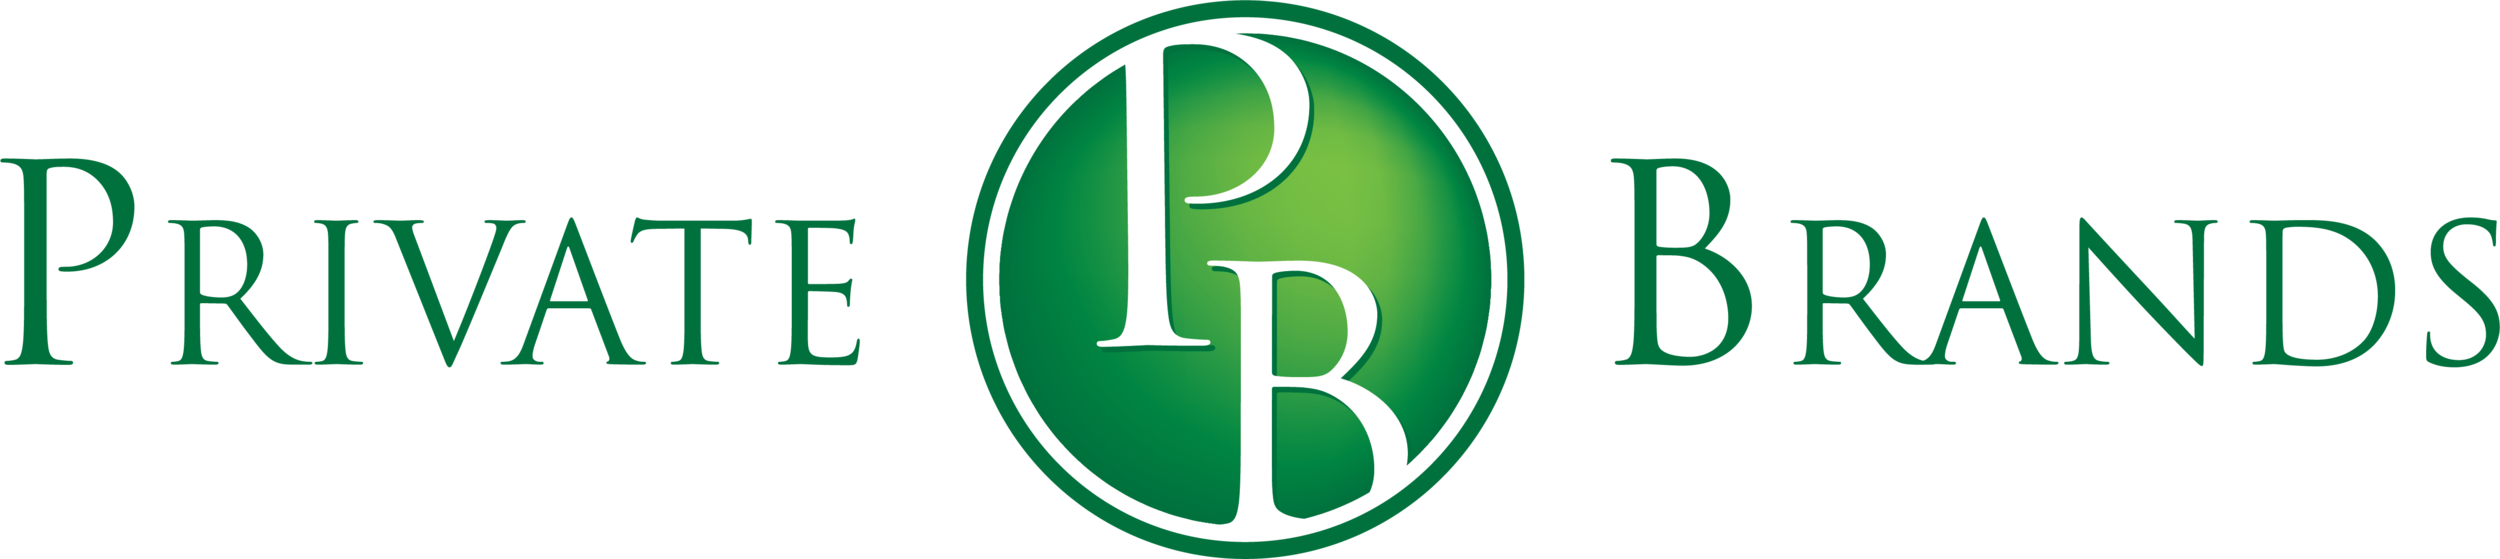 Private Brands Full Logo Vector.png